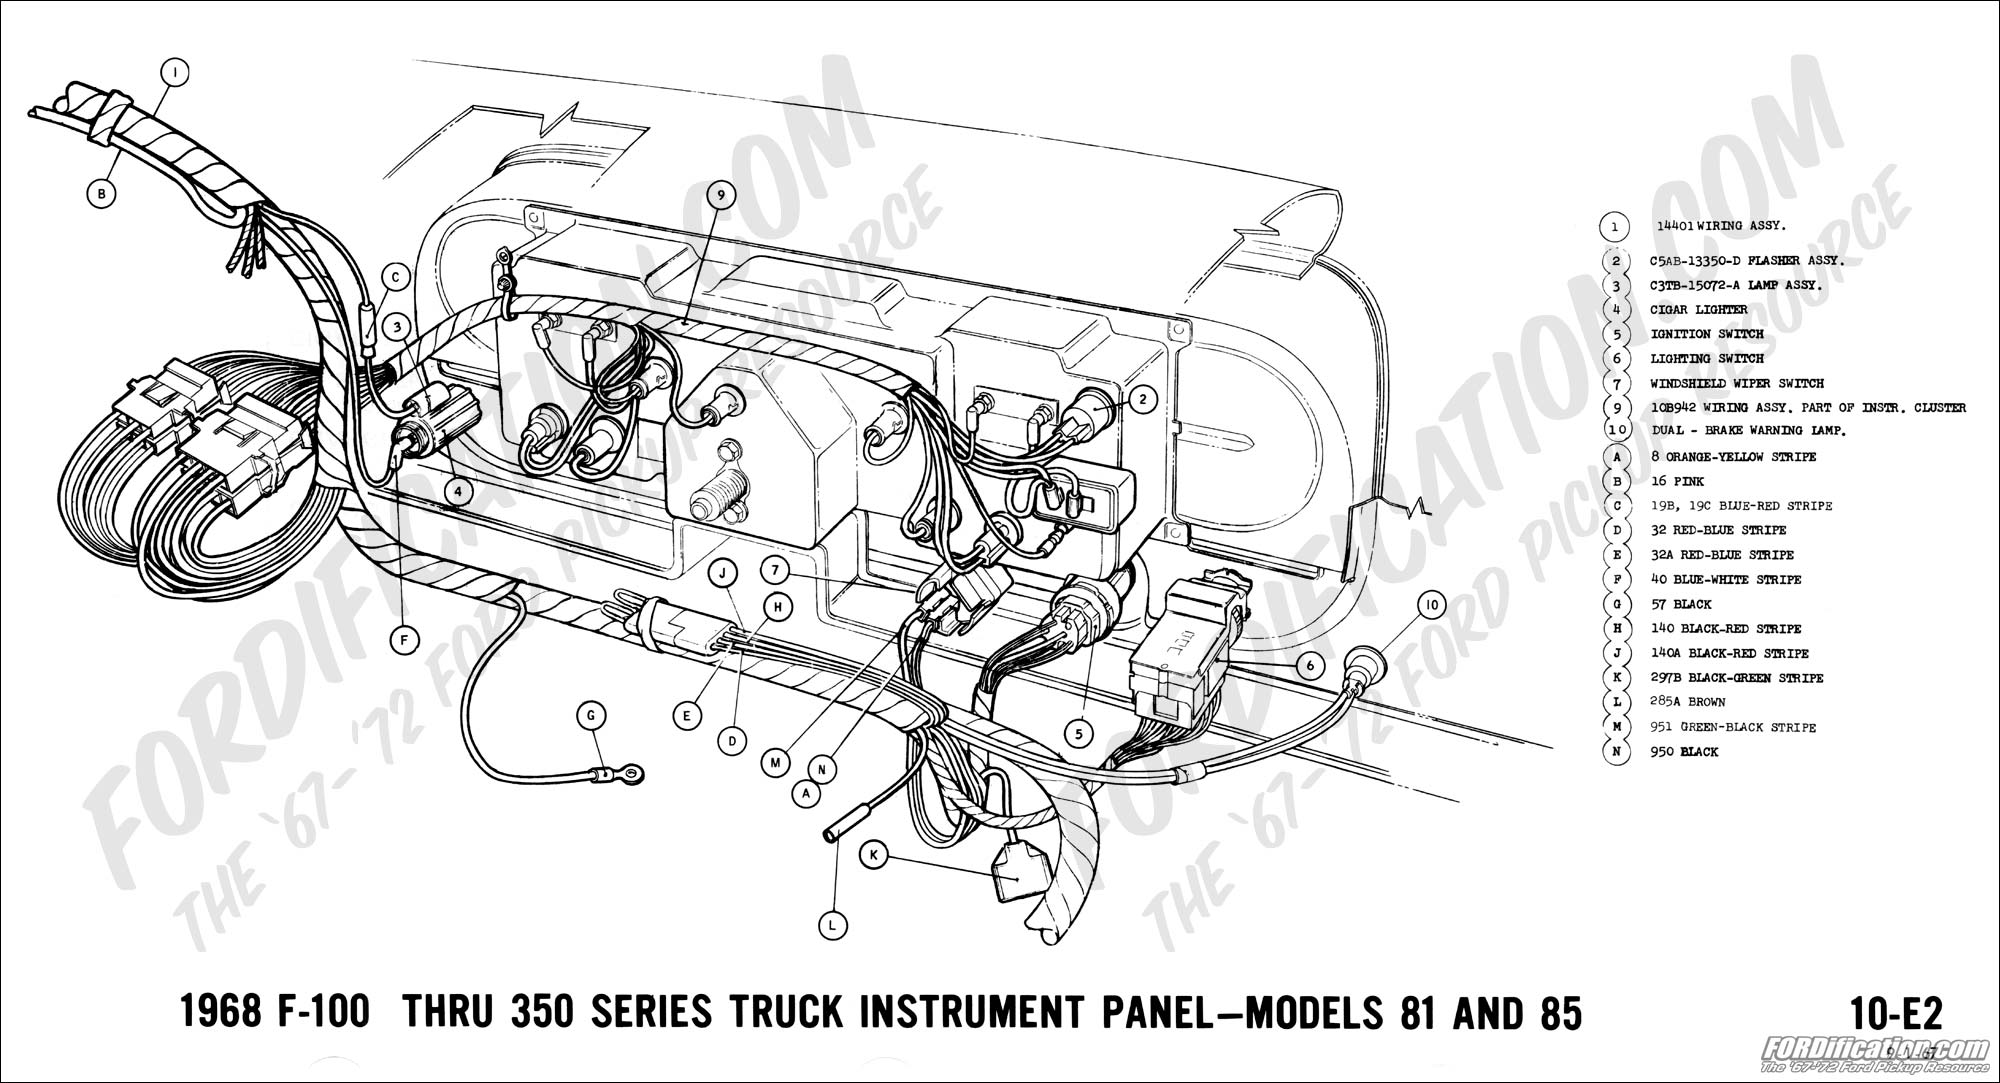 [SCHEMATICS_4HG]  74A24F4 Windshield Wiper Wiring Diagram Ford 1969 | Wiring Library | Honda Accord Wiper Wiring Diagram |  | Wiring Library